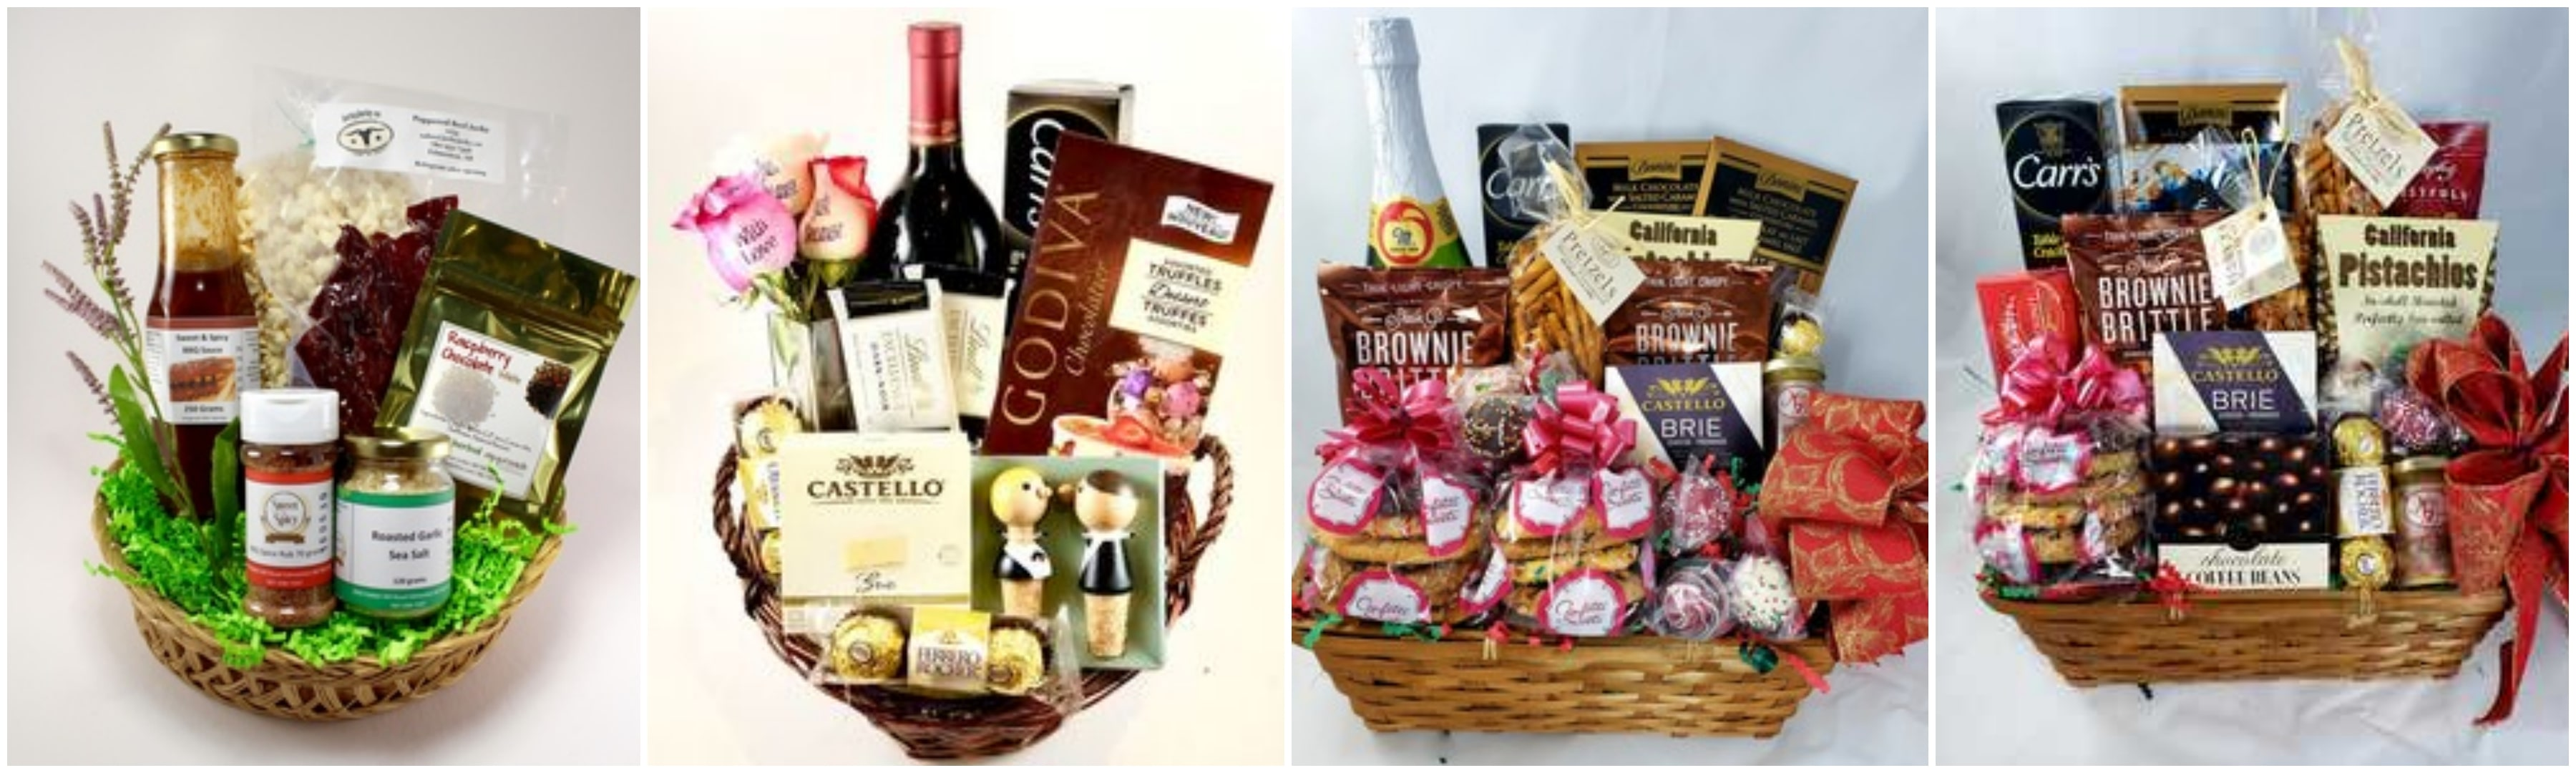 Gift Baskets Edmonton 2